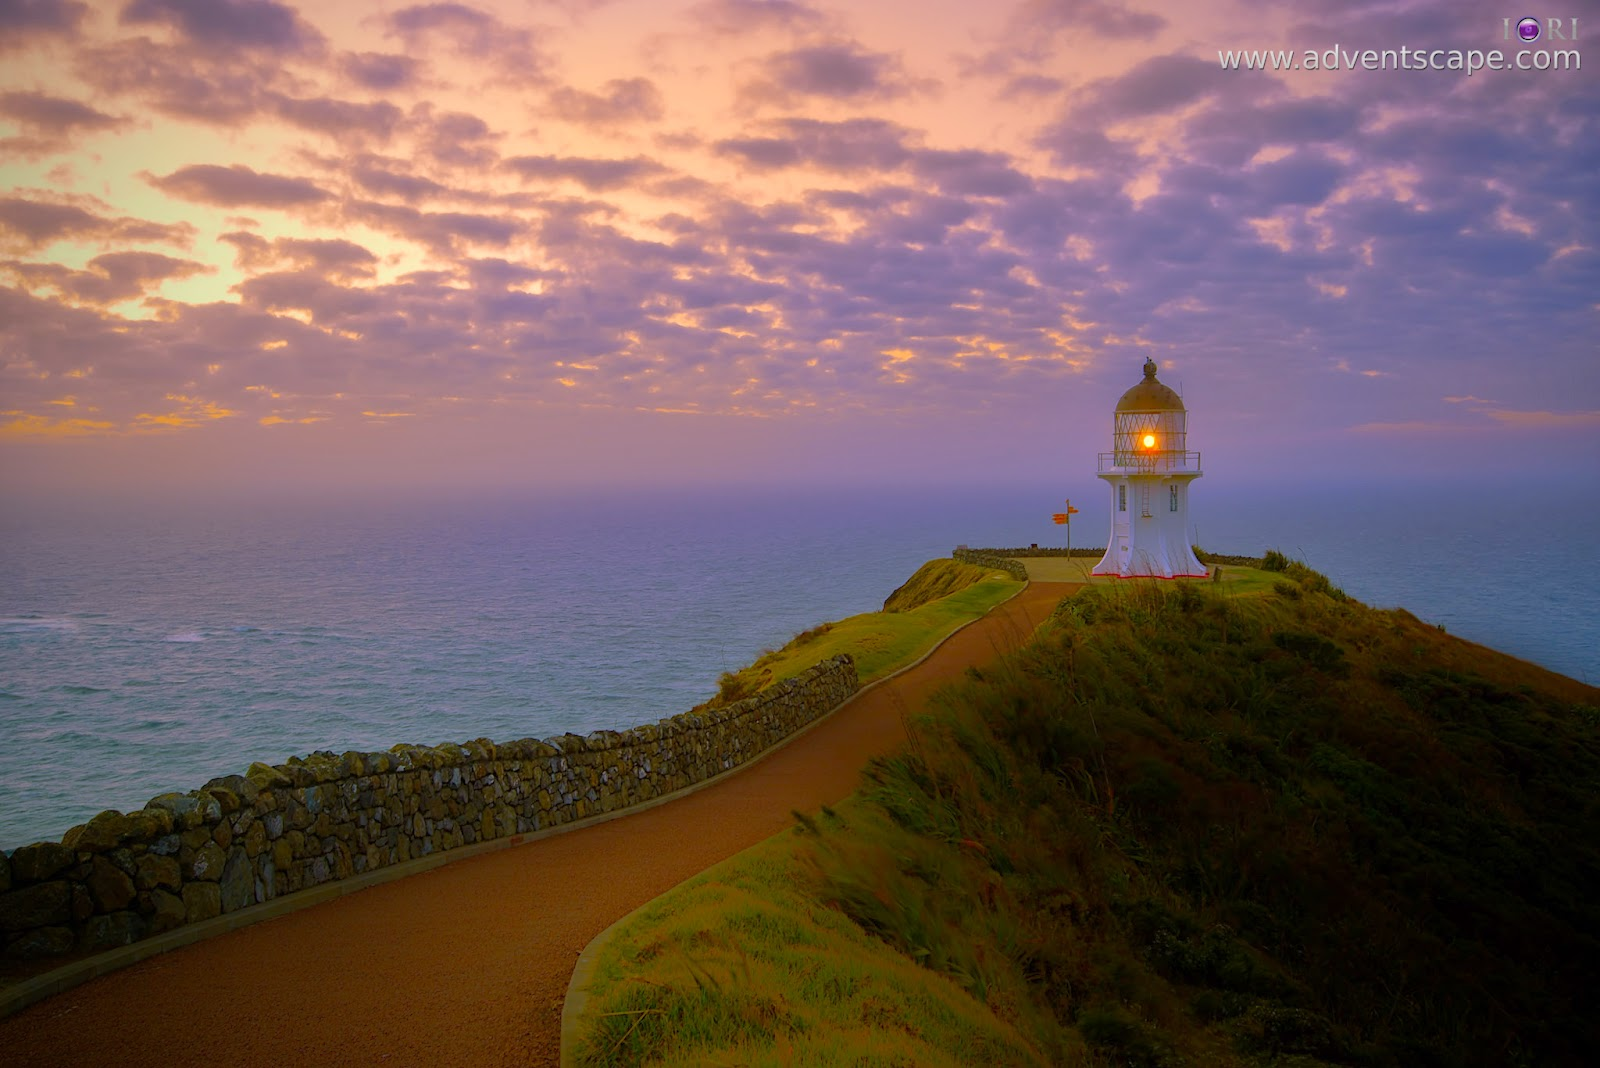 Philip Avellana, iori, adventscape, Cape Reinga, NZ, New Zealand, Te Paki, national park, lighthouse, landscape, seascape, sunset, north island